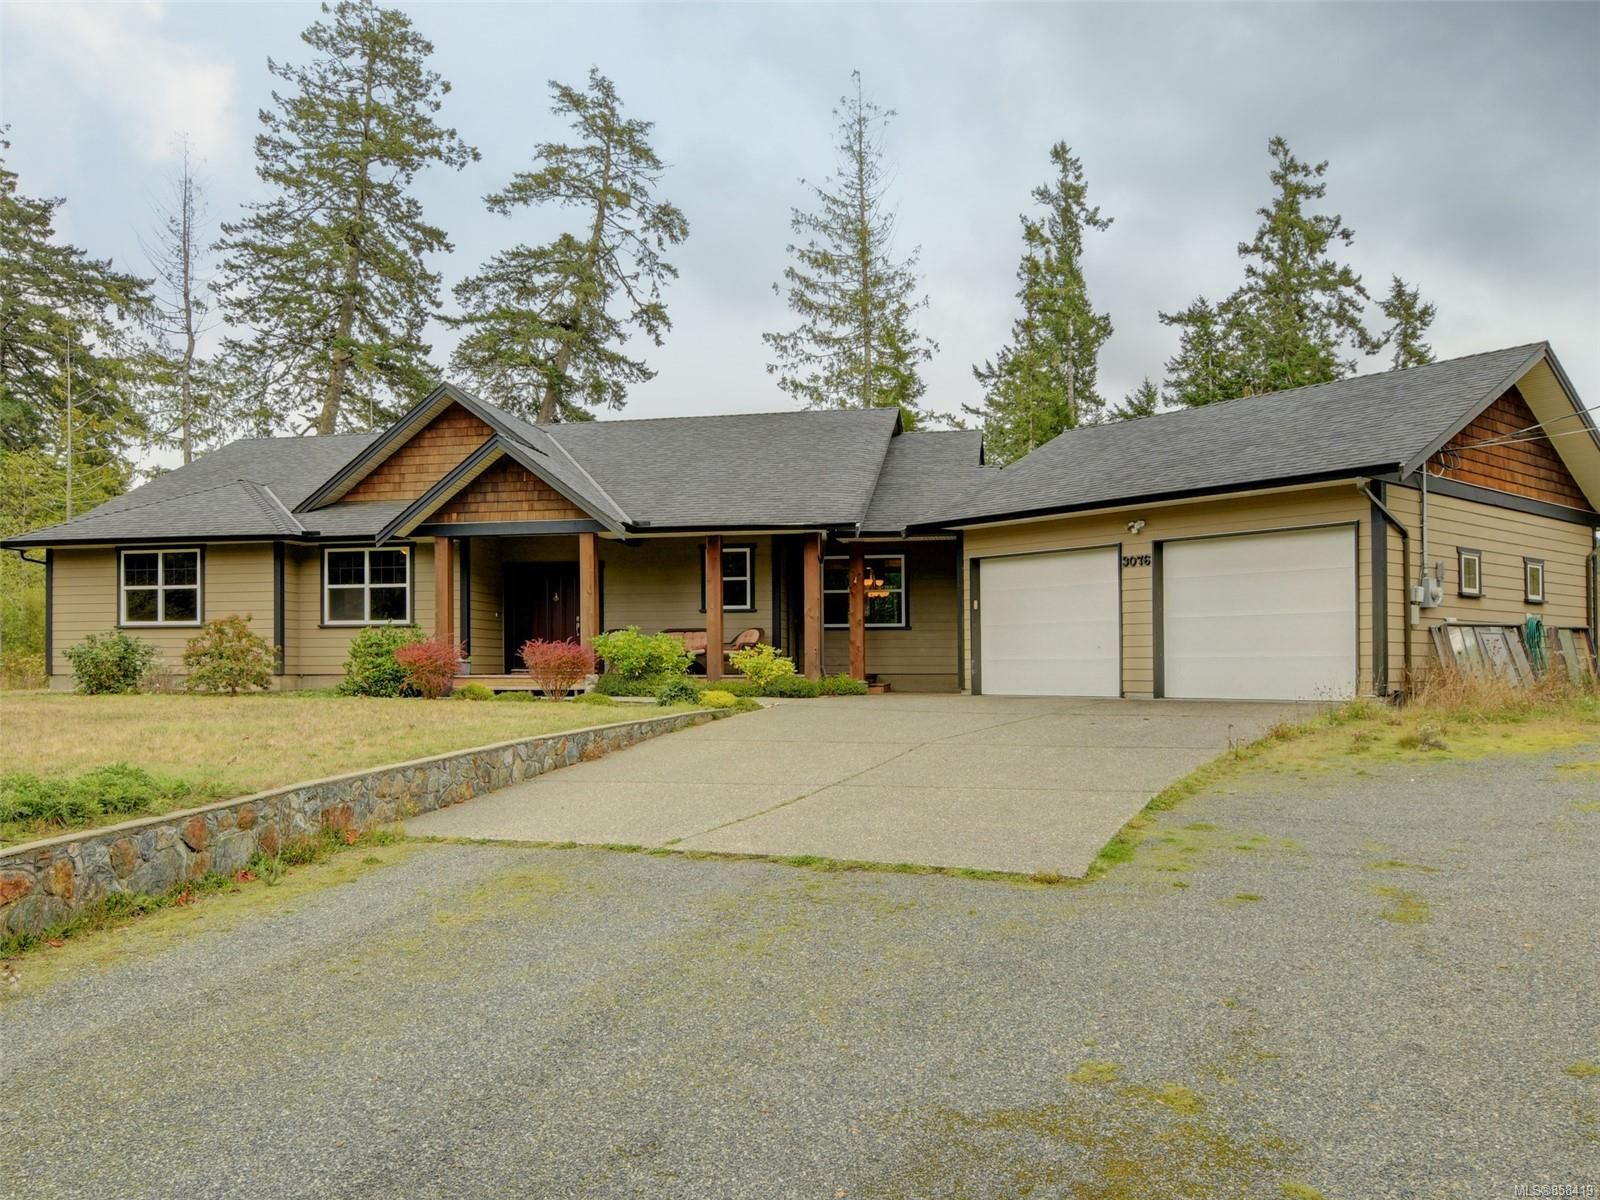 Main Photo: 3076 Sarah Dr in : Sk Otter Point House for sale (Sooke)  : MLS®# 858419